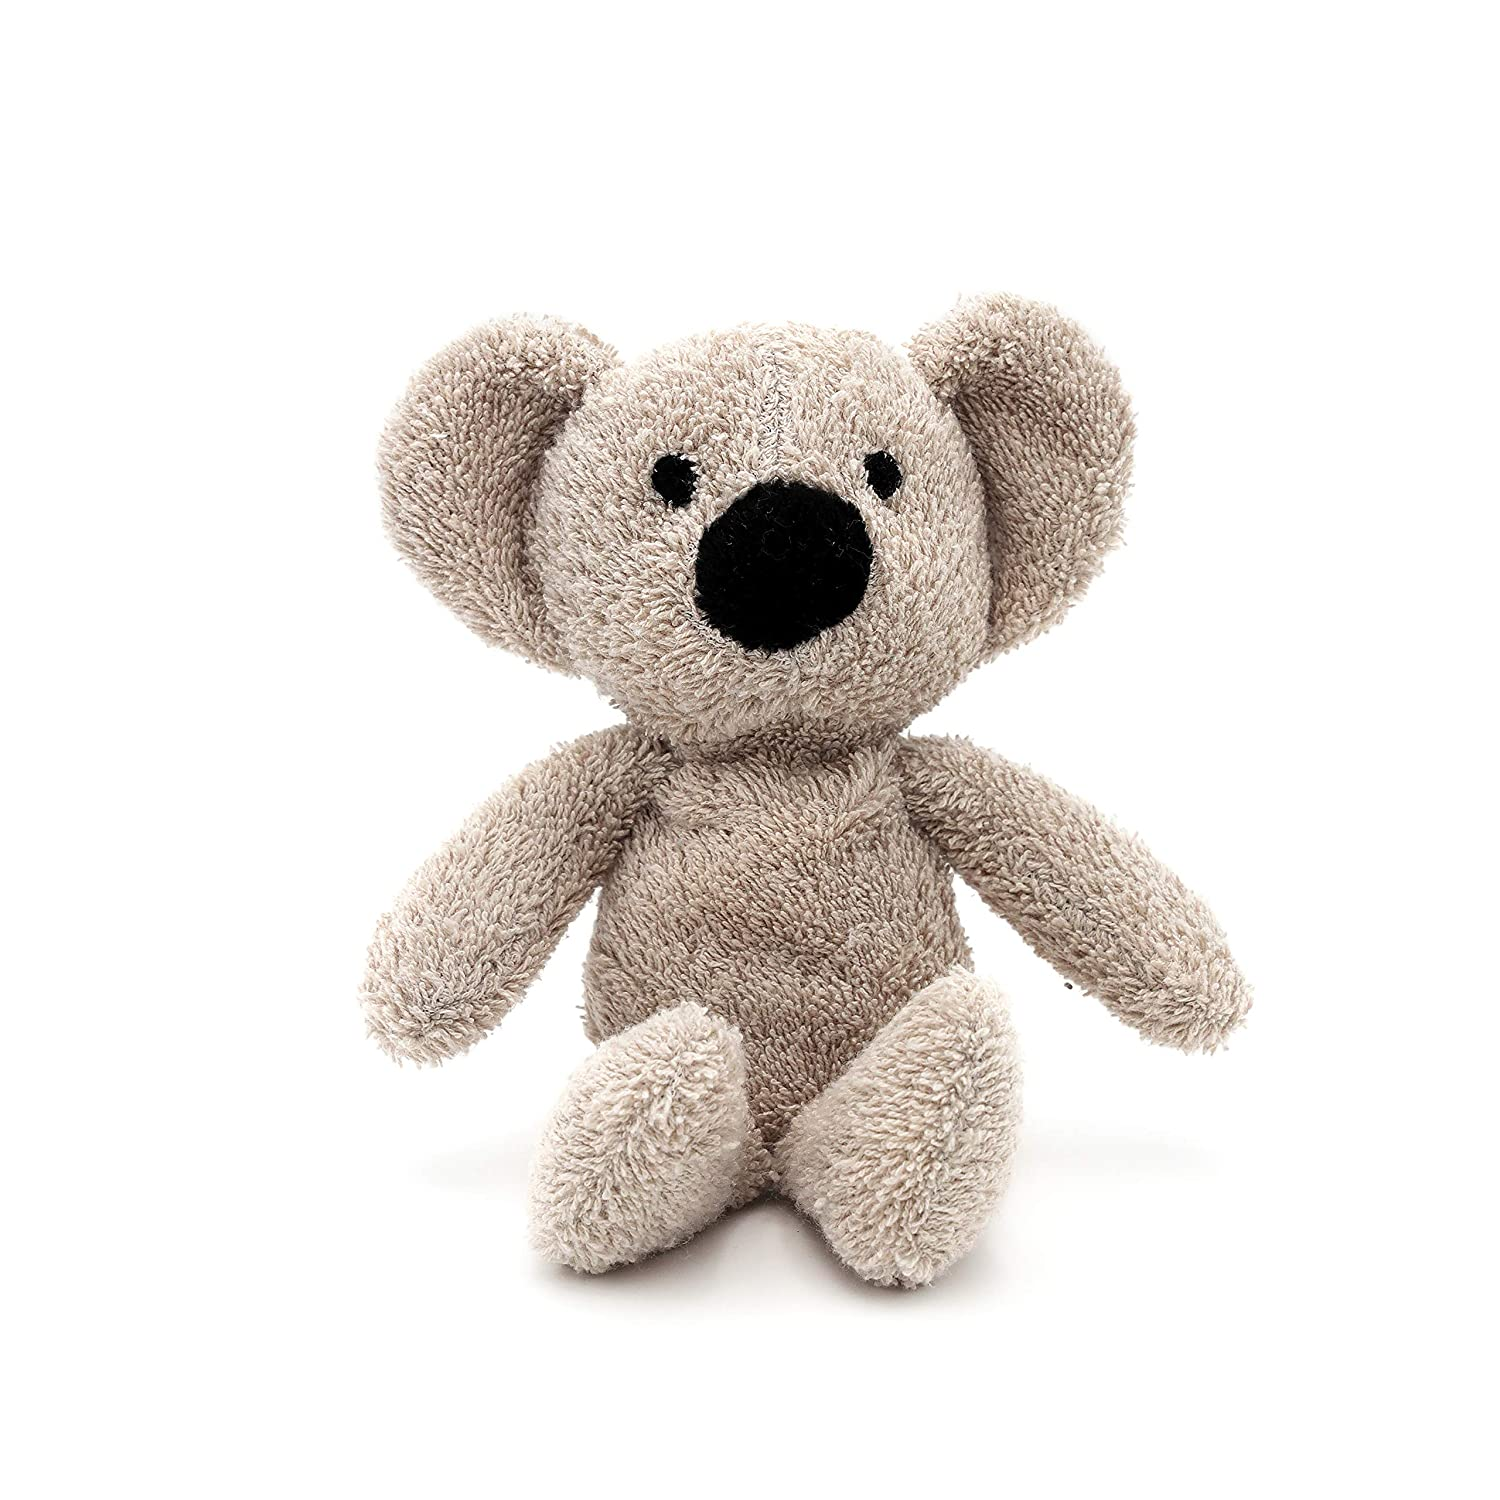 Thermal-Aid Zoo — Mini Ollie The Koala — Kids Hot and Cold Pain Relief Boo Boo Tool — Heating Pad Microwavable Stuffed Animal and Cooling Pad — Easy Wash, Natural Sleep Aid